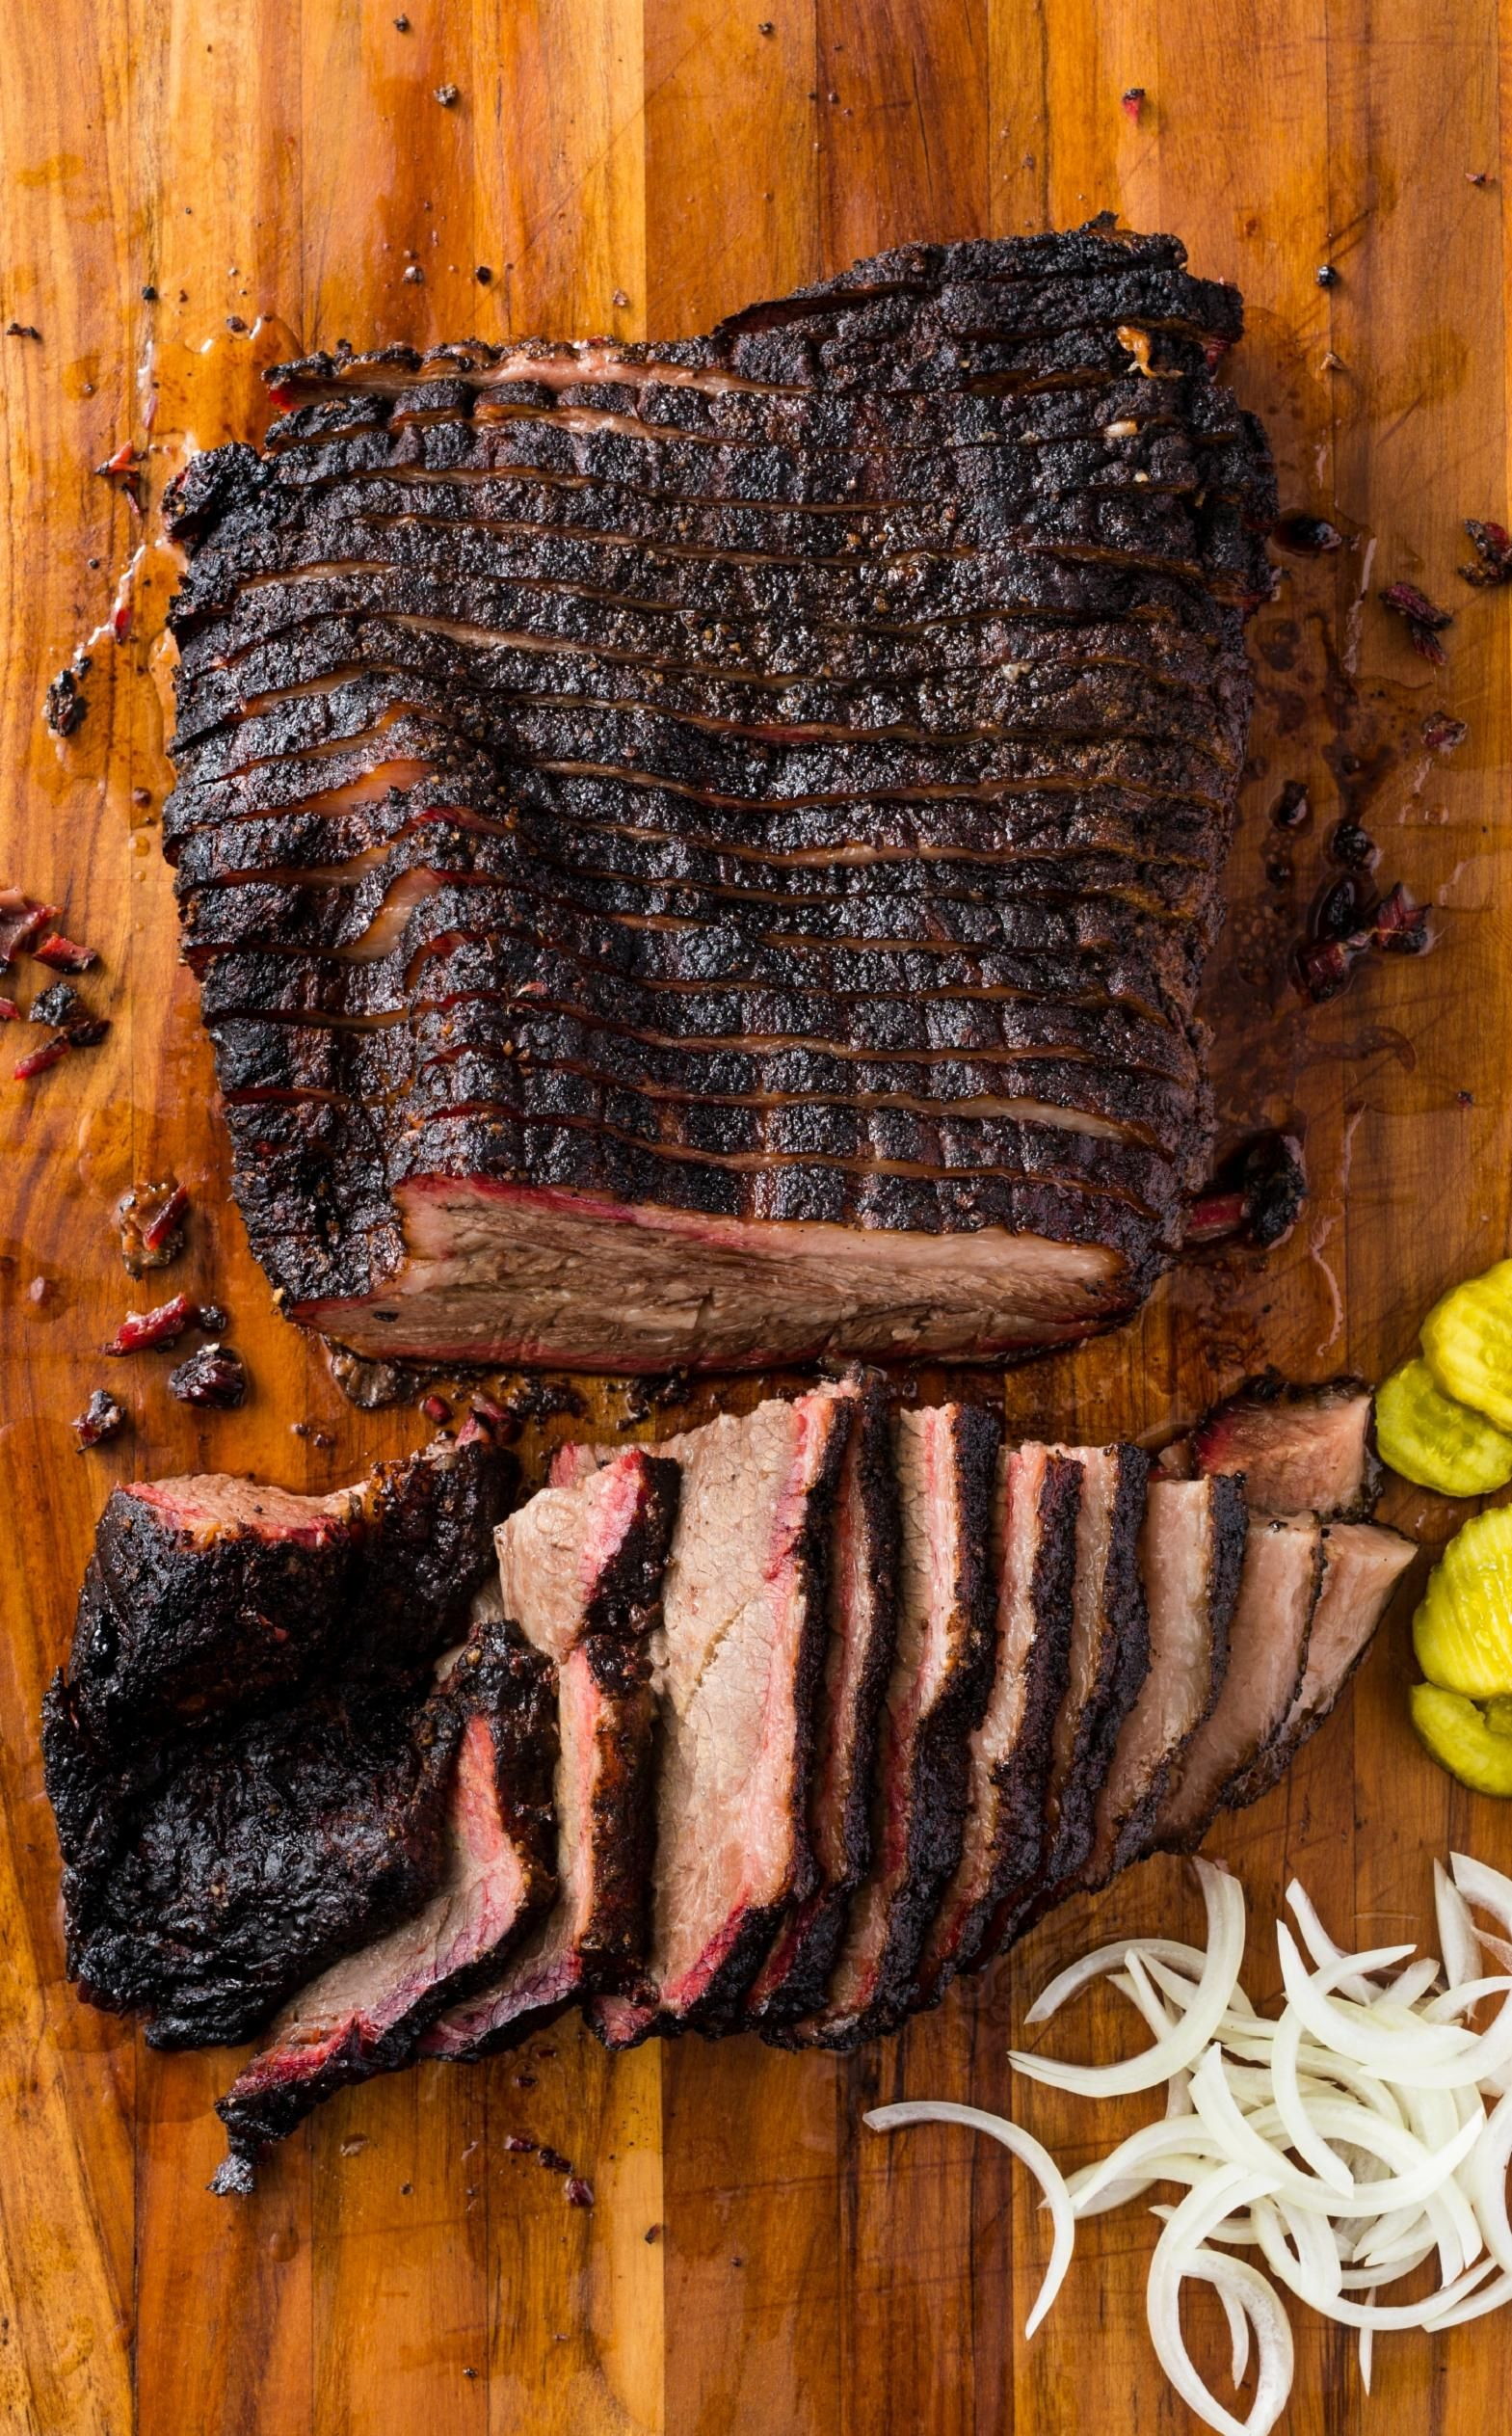 Texas Barbecue Brisket Cook S Country Recipe In 2020 Texas Barbecue Texas Bbq Brisket Brisket